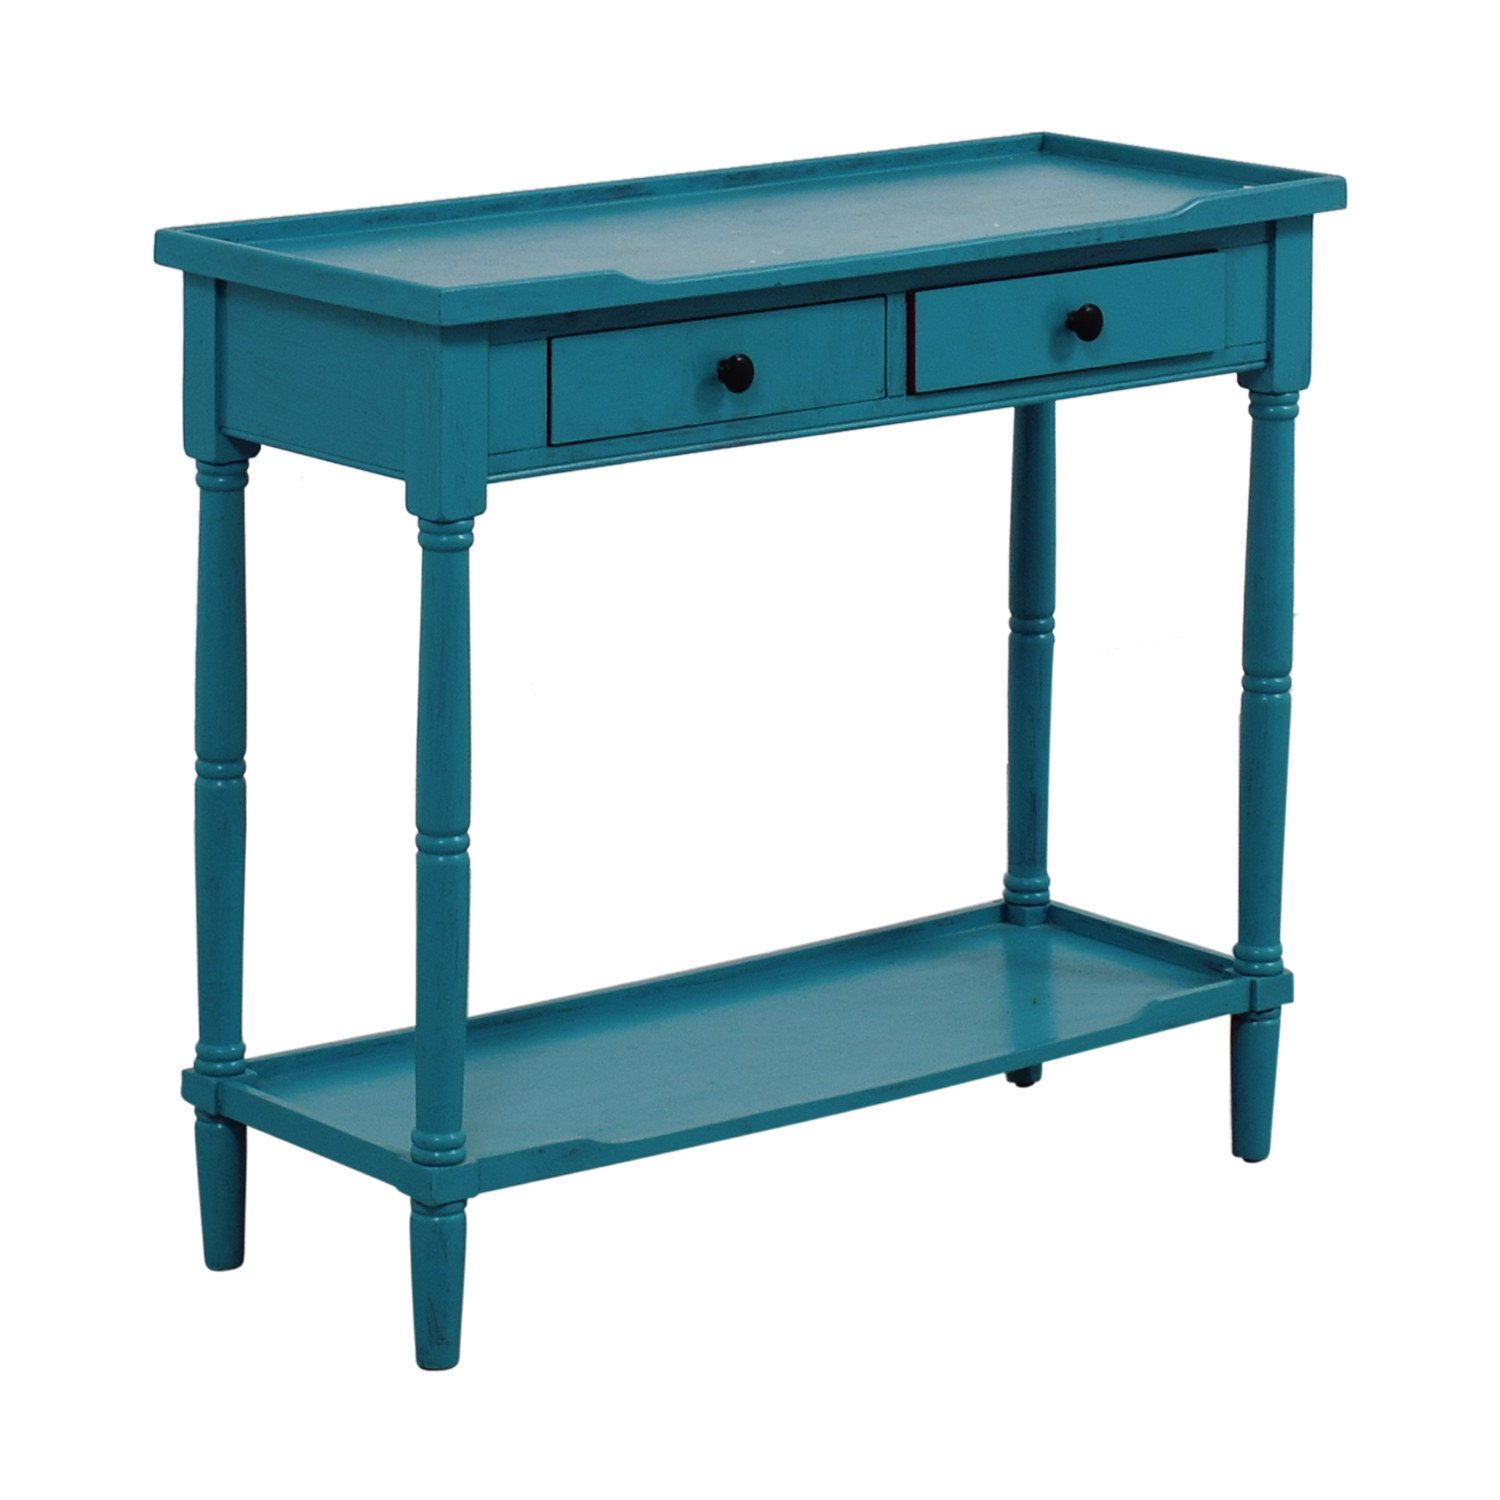 off homegoods teal entryway table tables cherry accent marshalls home goods kitchen and chairs big square coffee red lamp small mirrored nightstand nest rustic entry custom dining